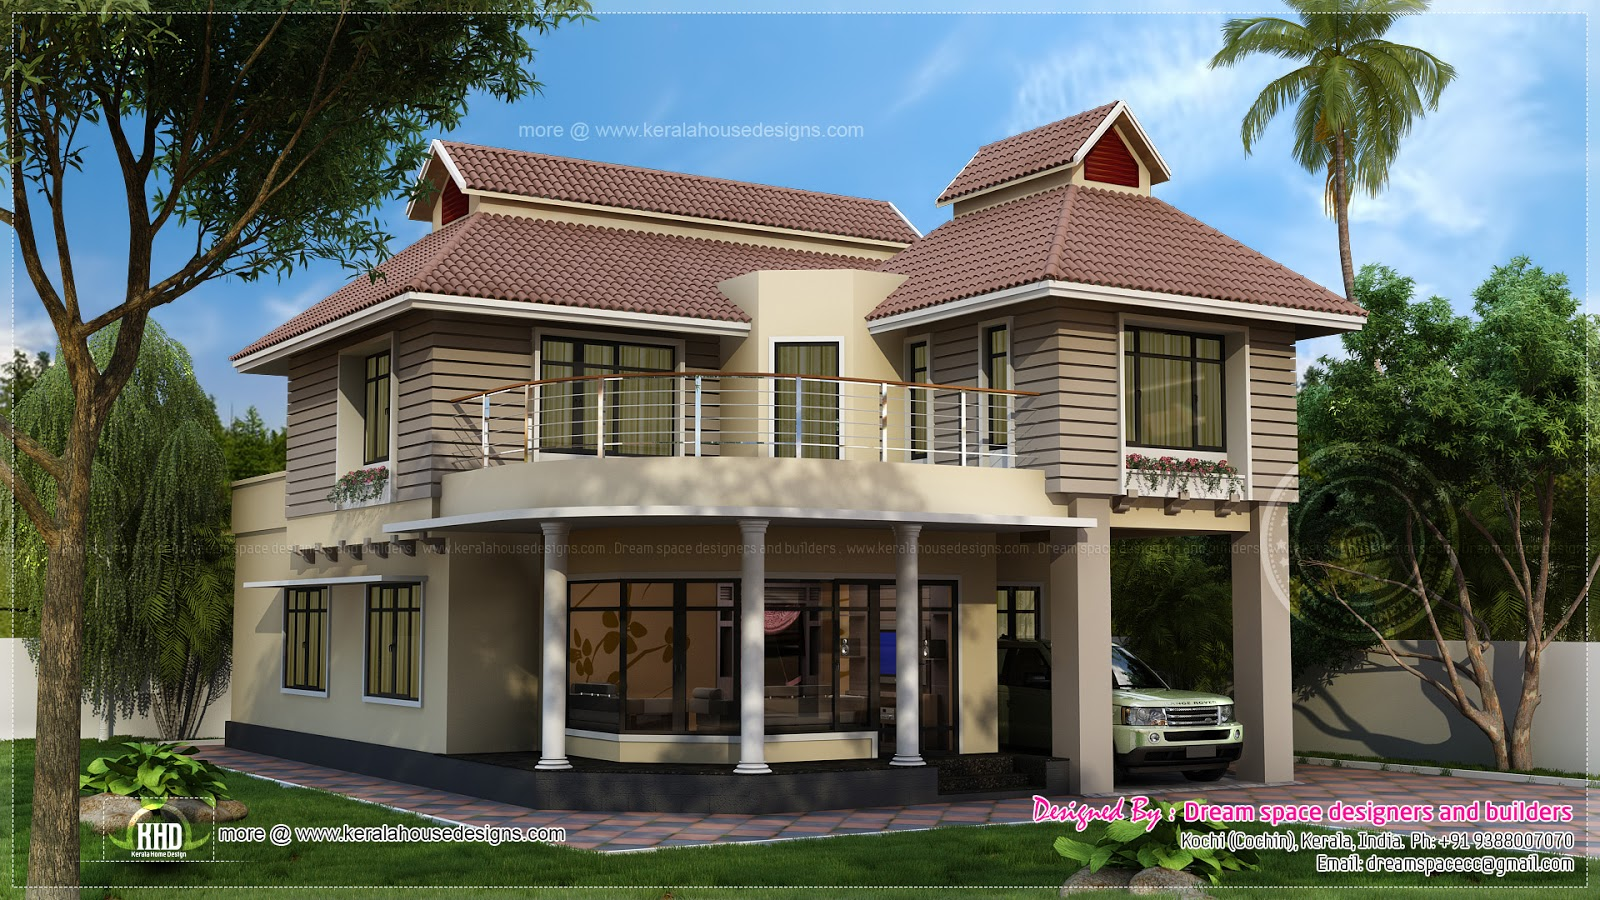 Two storey contemporary fusion villa exterior kerala for 2 story house exterior design